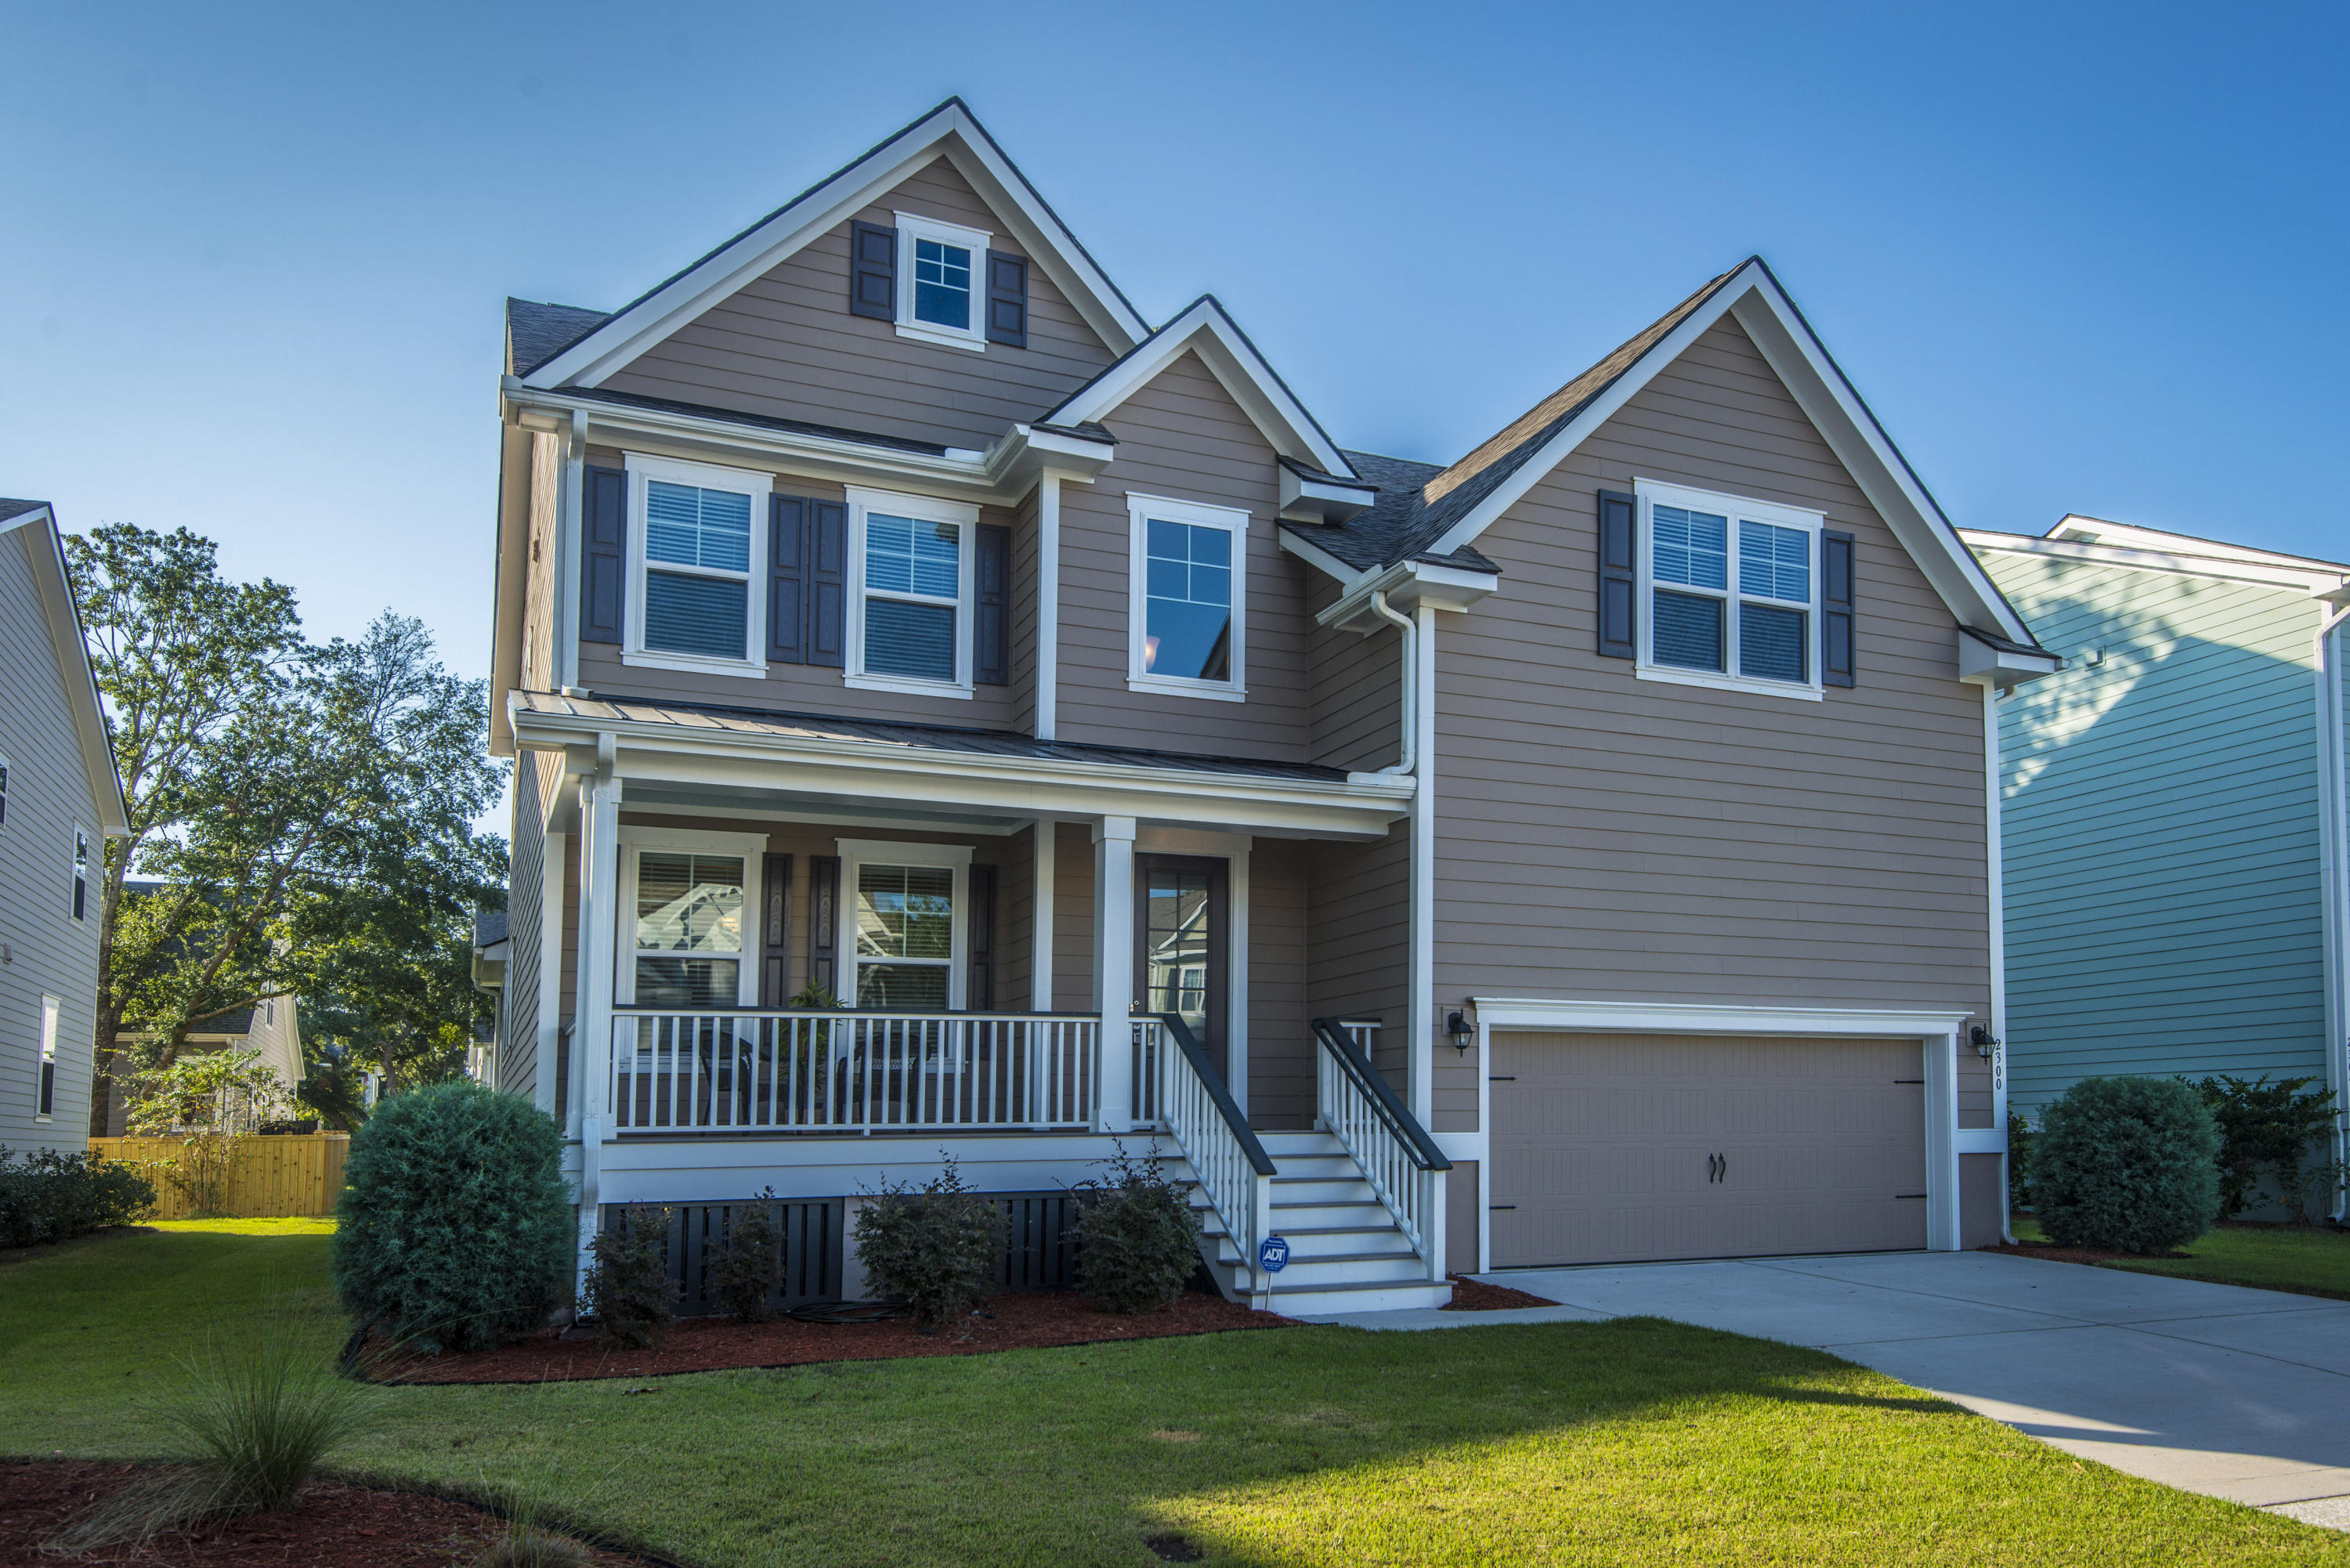 Oyster Point Homes For Sale - 2300 Skyler, Mount Pleasant, SC - 11